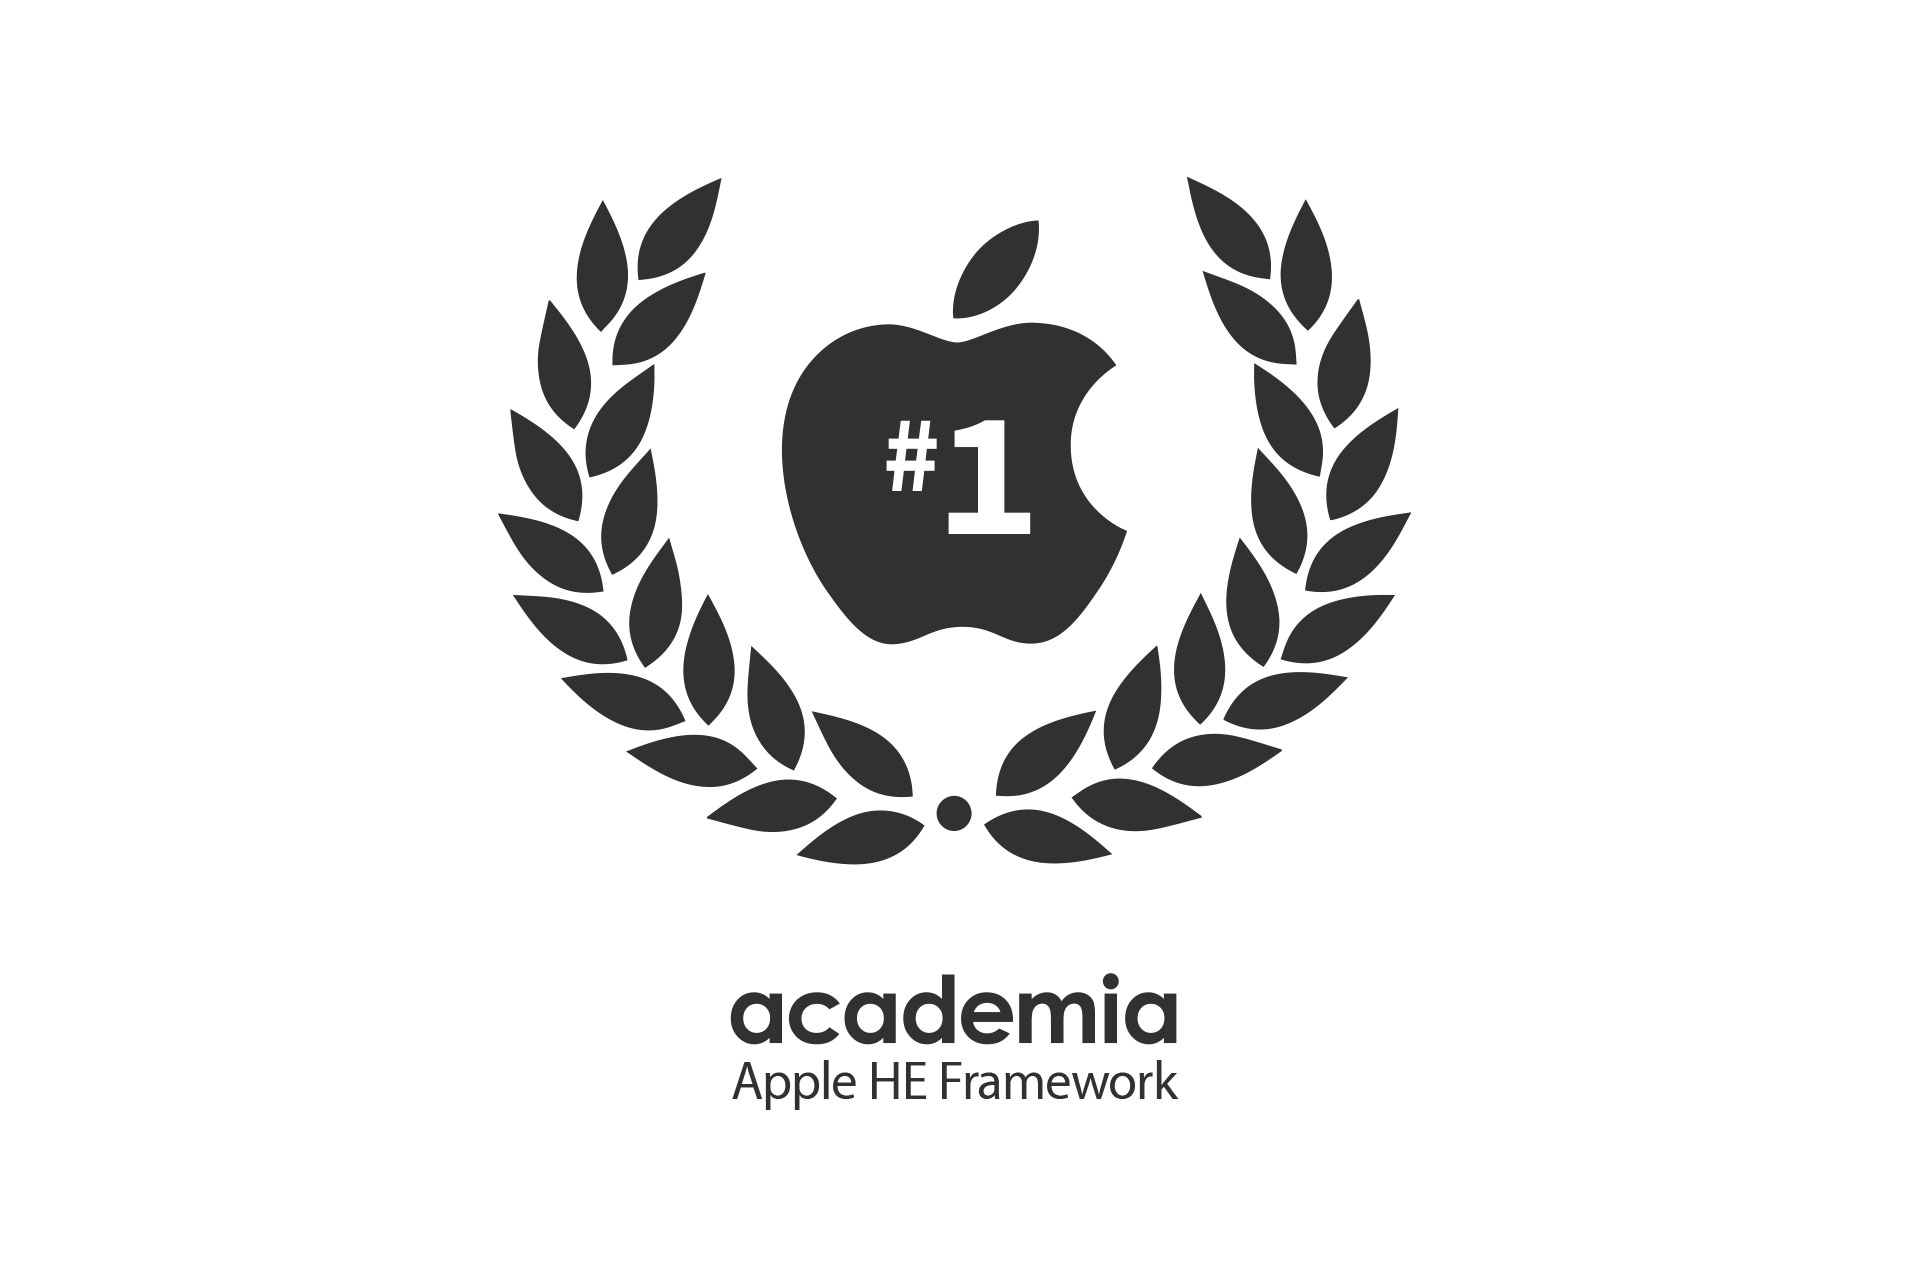 Academia retain 'Rank 1' status on the Apple HE Framework